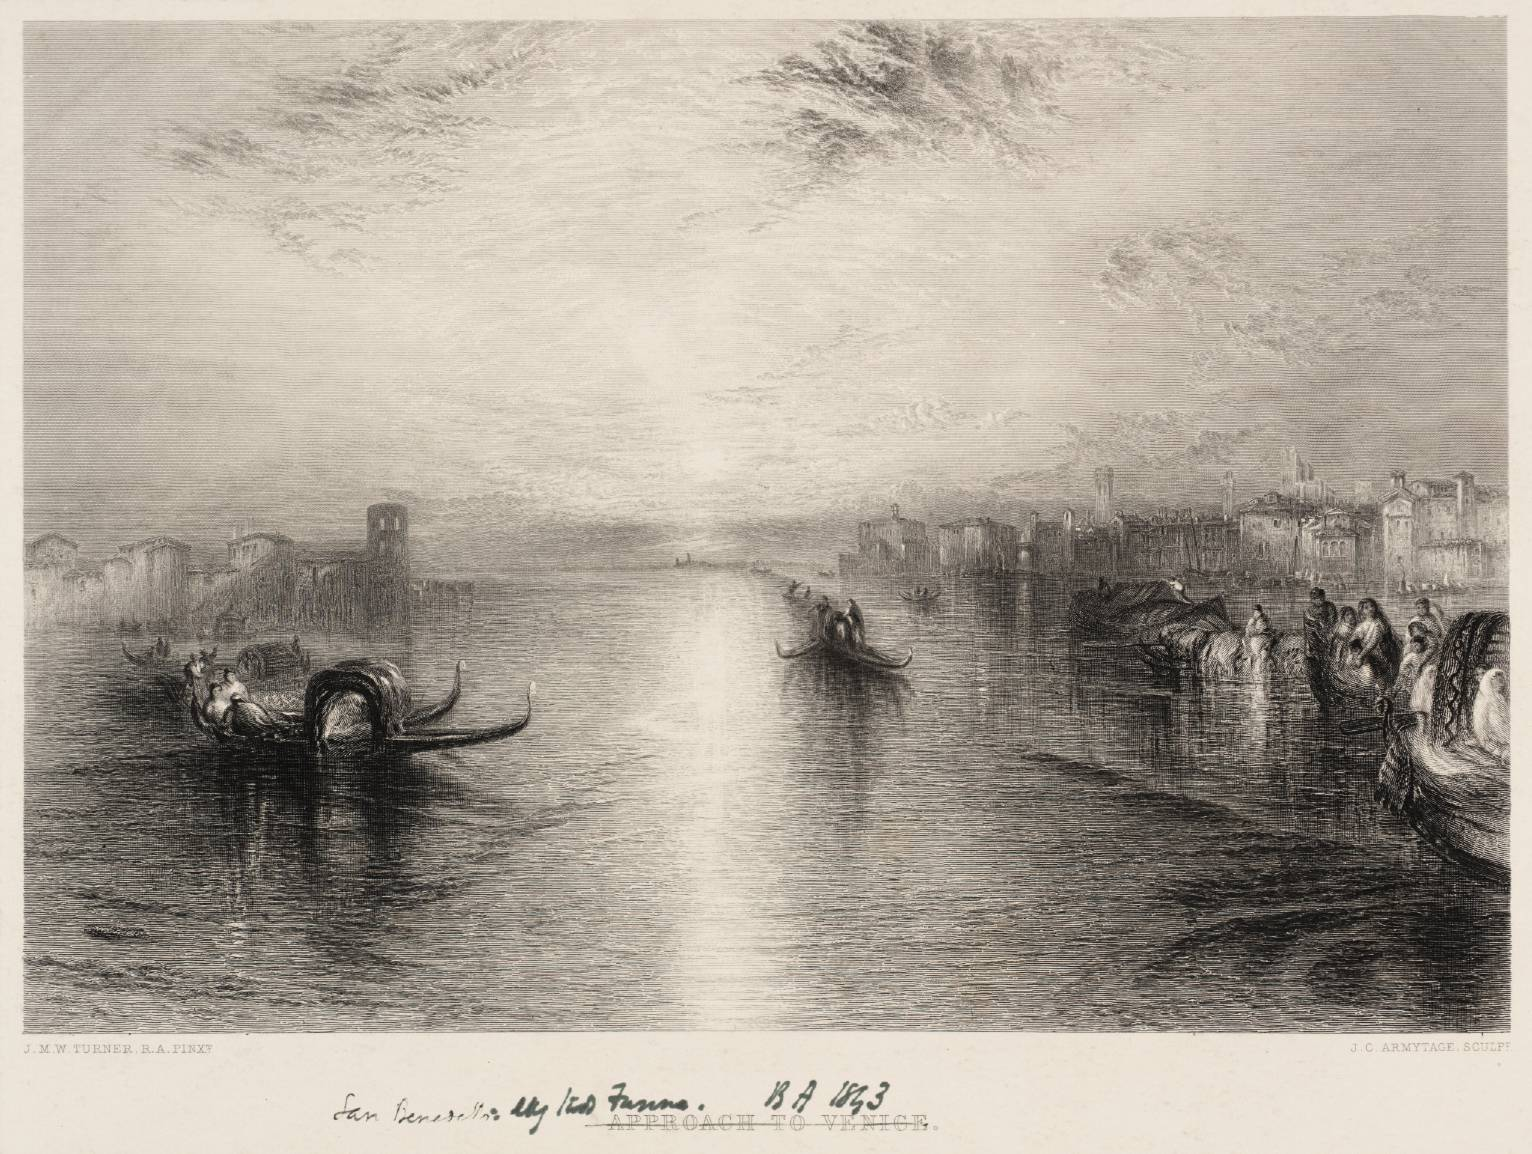 Approach to Venice, engraved by Armytage published 1859-61 by Joseph Mallord William Turner 1775-1851